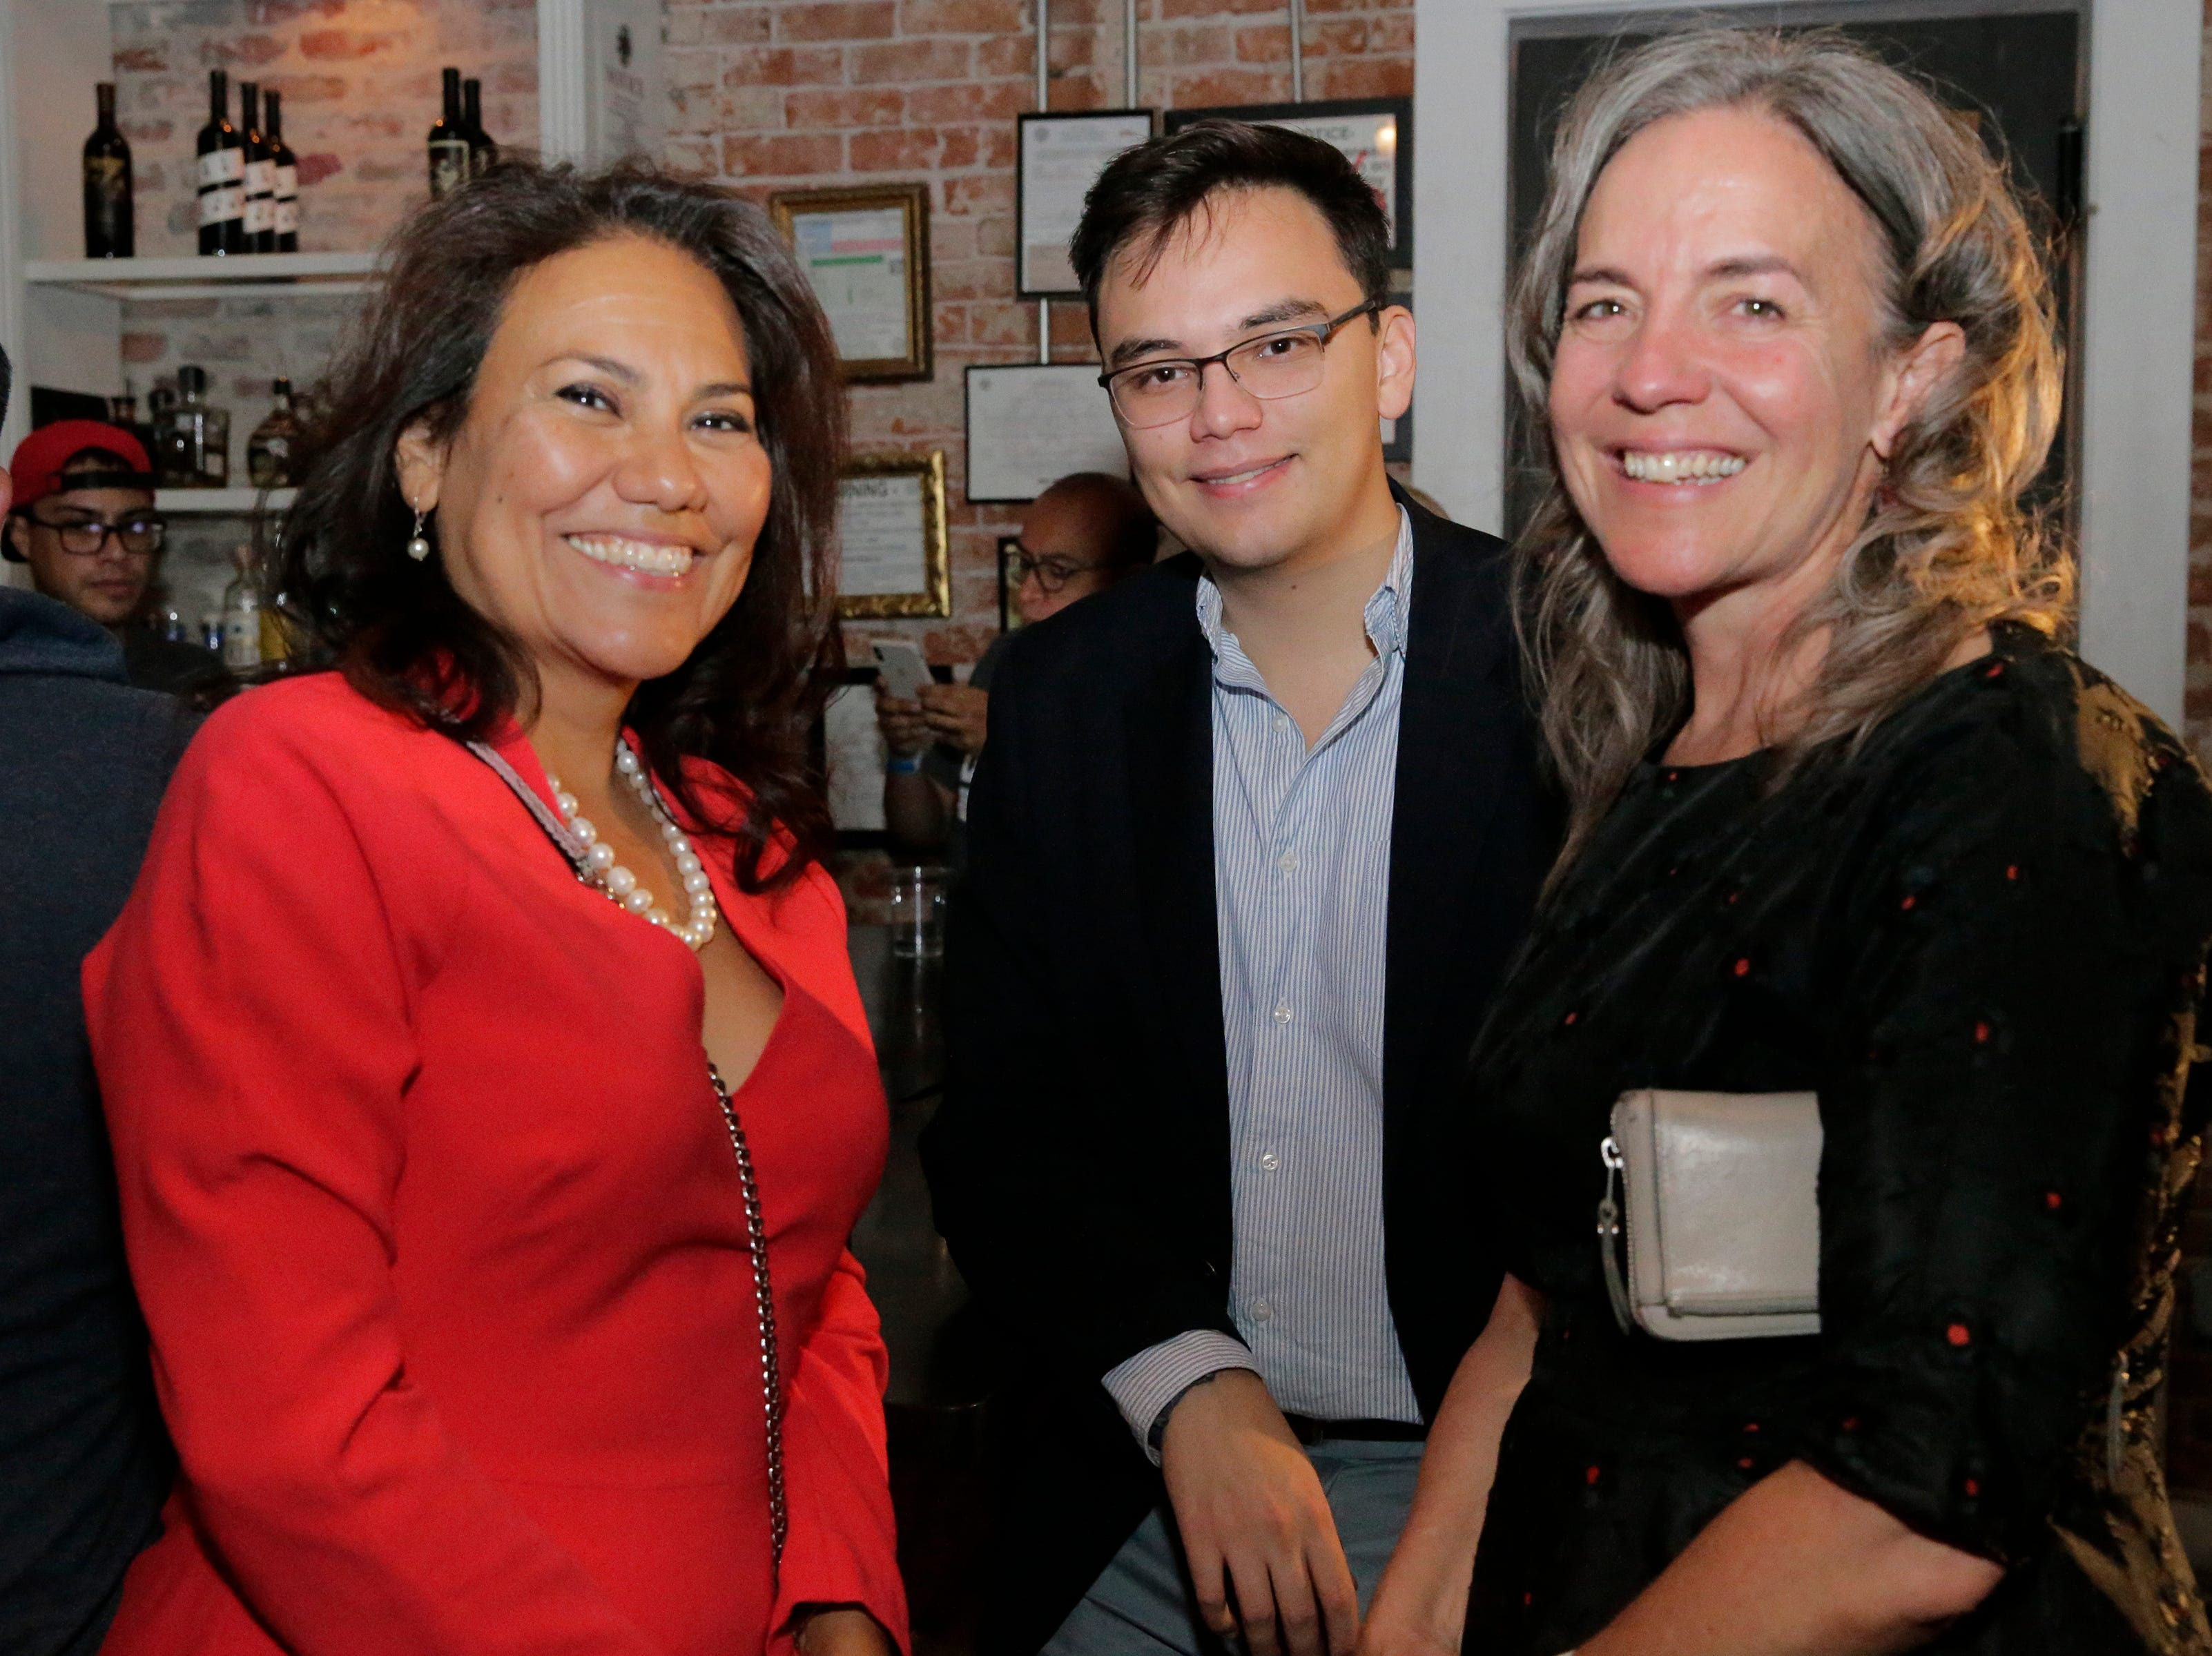 U.S. Rep.-elect Veronica Escobar celebrated with her son and campaign aide Susie Byrd at Later Later in Downtown El Paso. She will be one of the first Latinas from Texas in Congress.